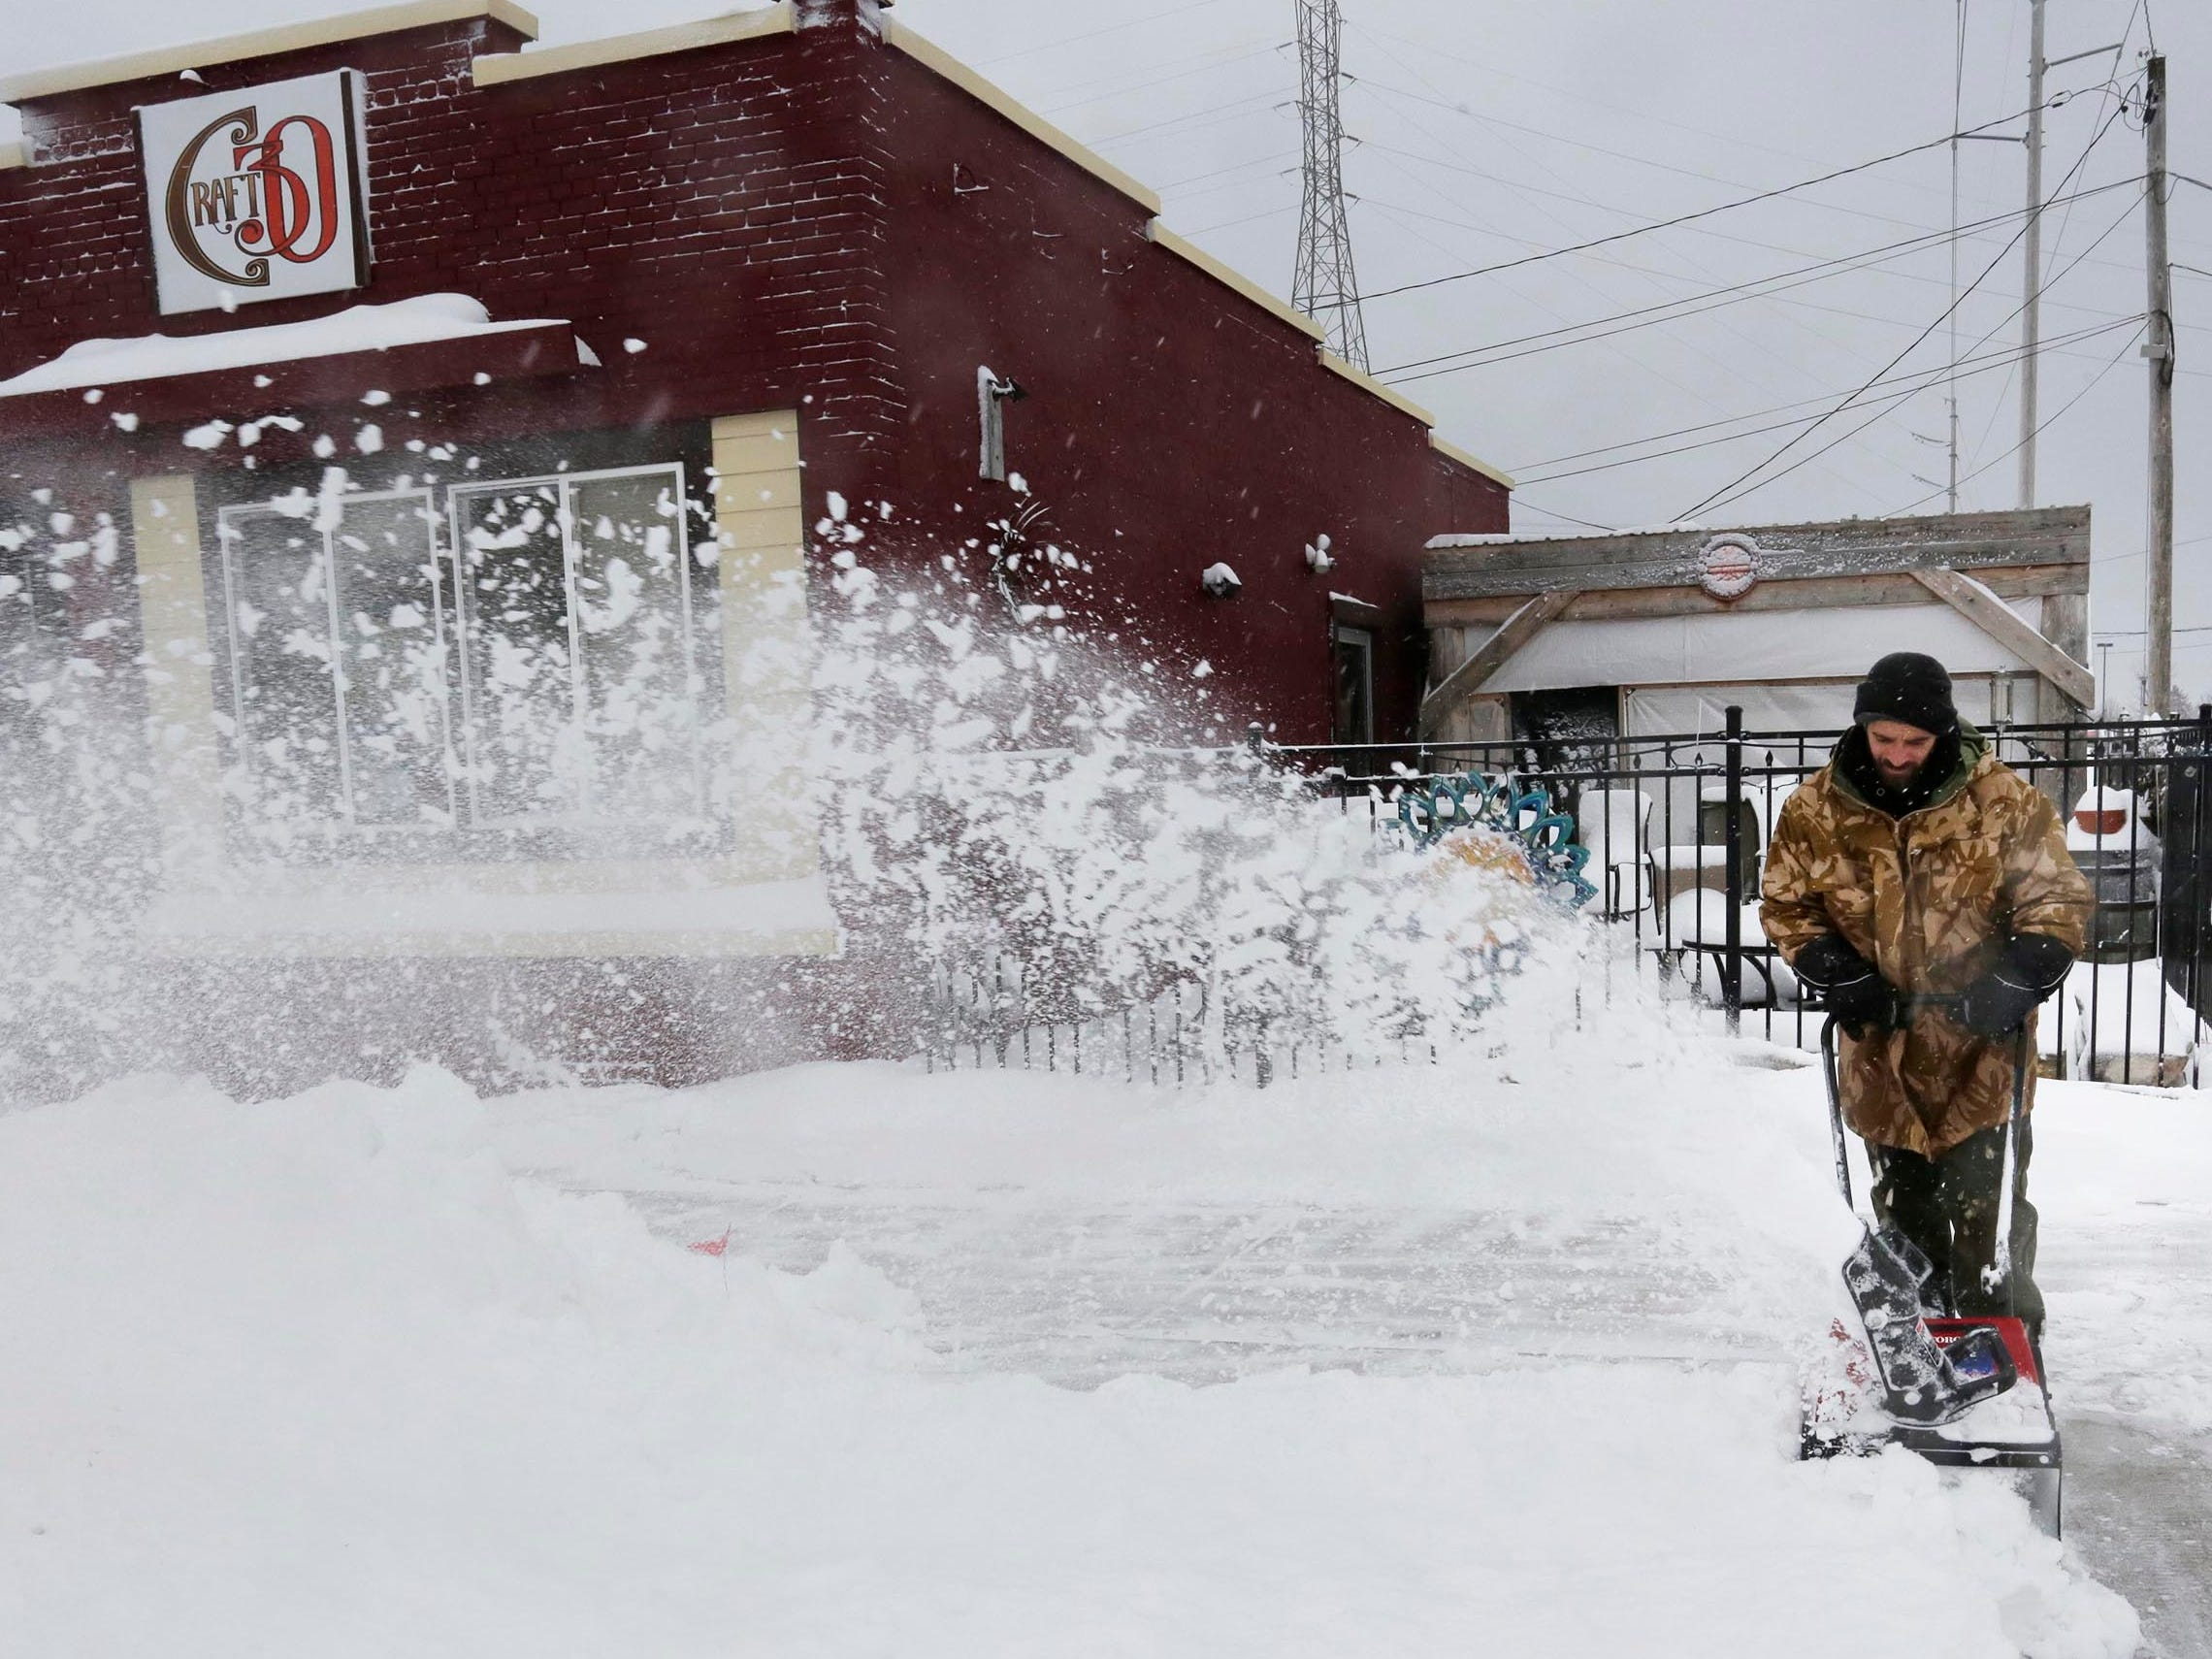 Dan Shaw blows snow near Craft 30 on South 10th Street, Tuesday, February 12, 2019, in Sheboygan, Wis.